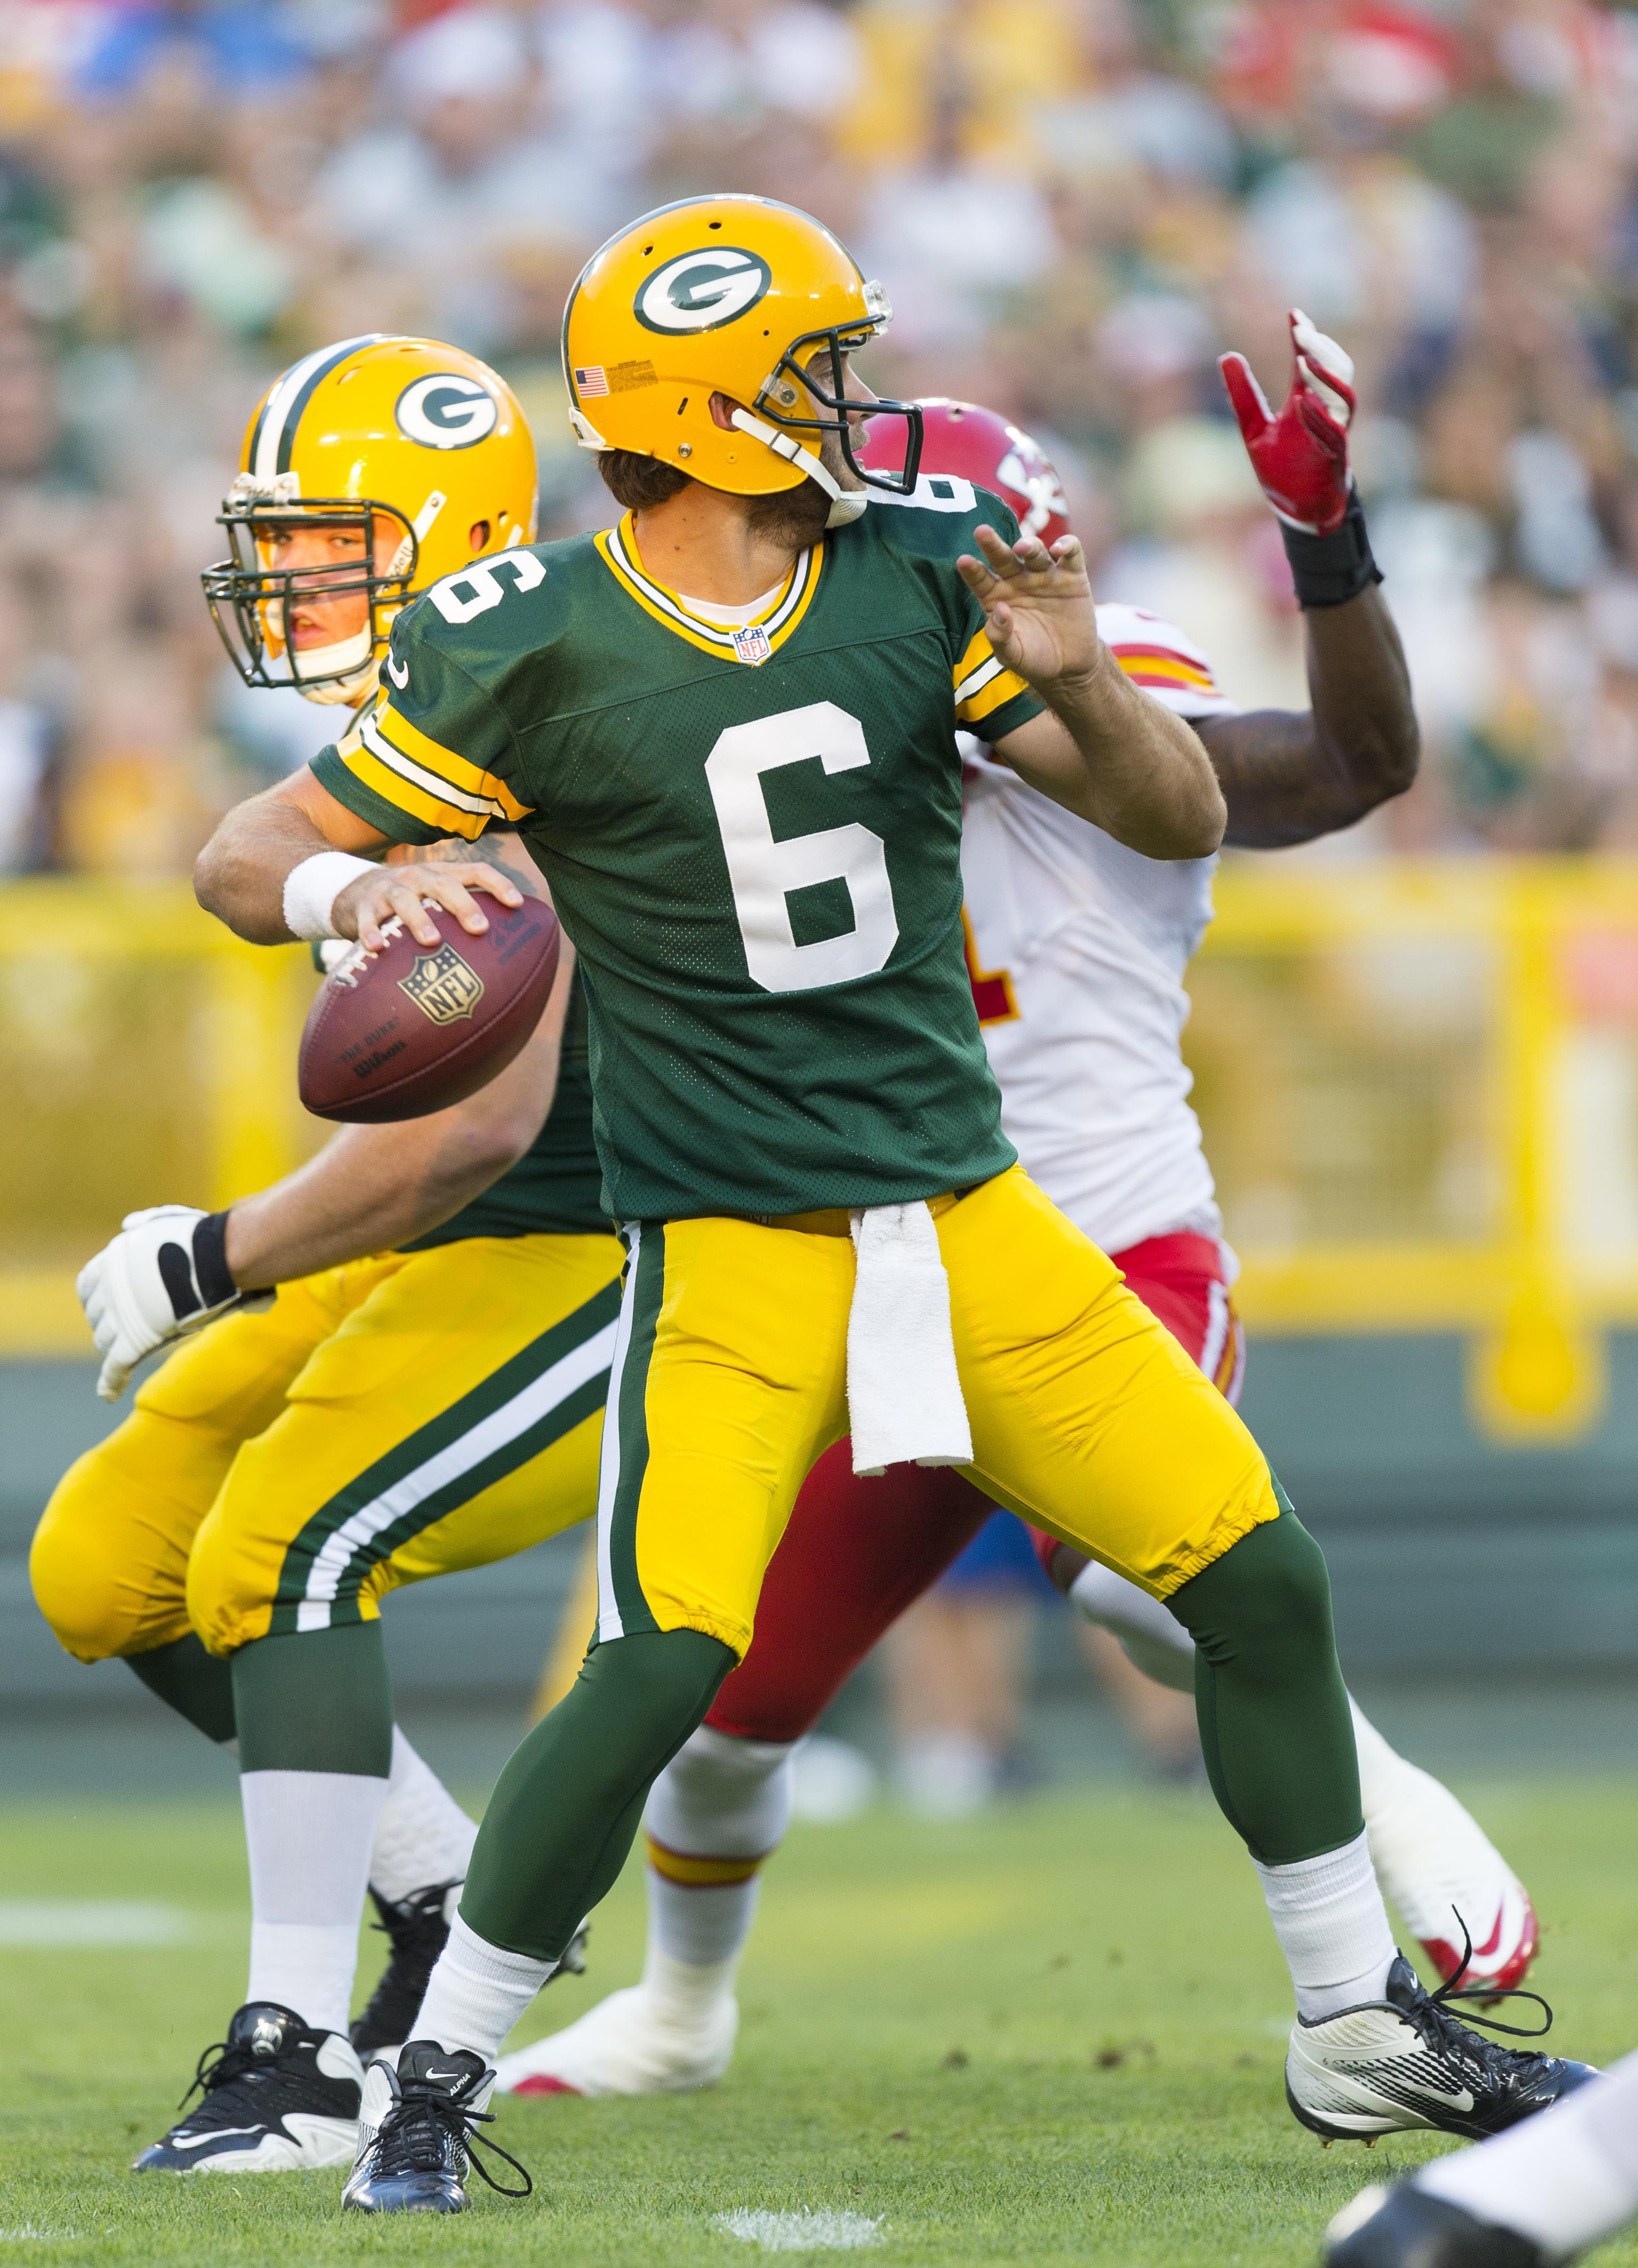 Aug 30, 2012; Green Bay, WI, USA; Green Bay Packers quarterback Graham Harrell (6) throws a pass during the second quarter against the Kansas City Chiefs at Lambeau Field.  Mandatory Credit: Jeff Hanisch-US PRESSWIRE